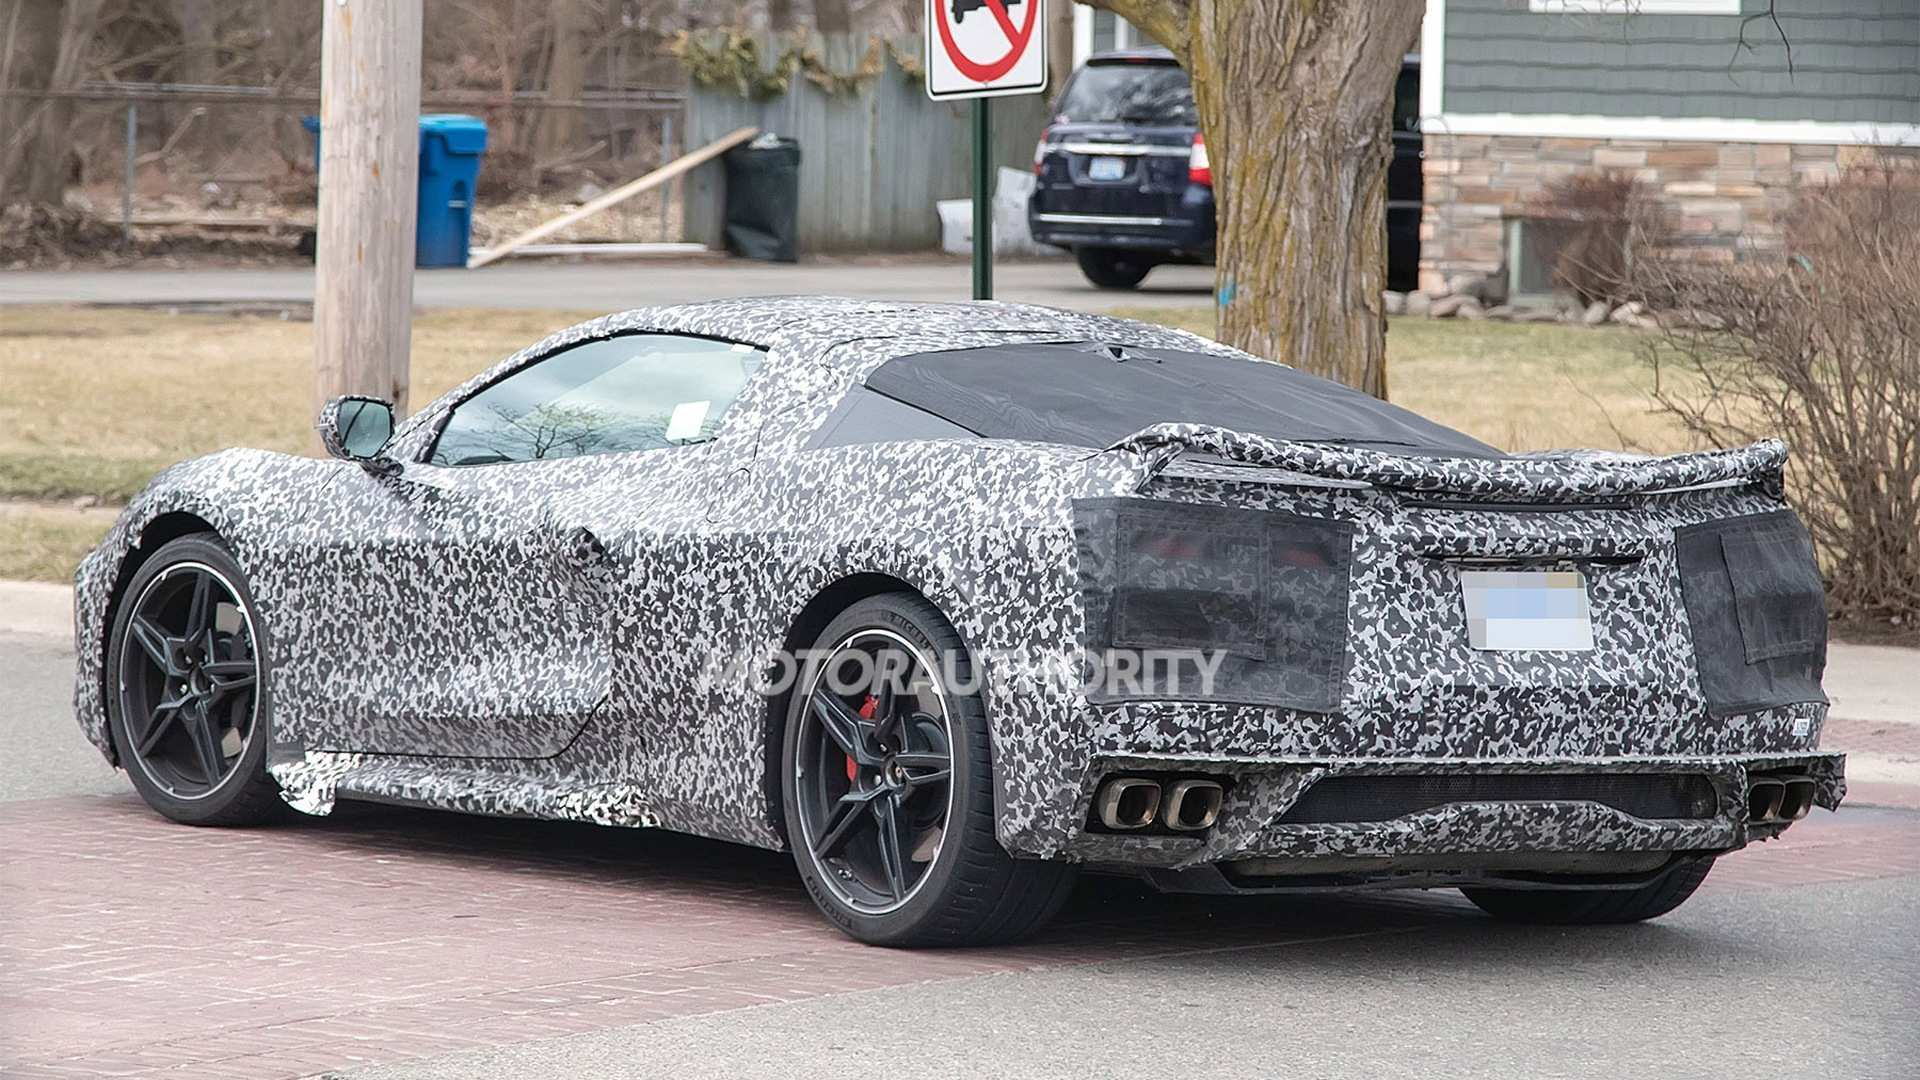 28 All New 2020 Corvette Stingray Pricing